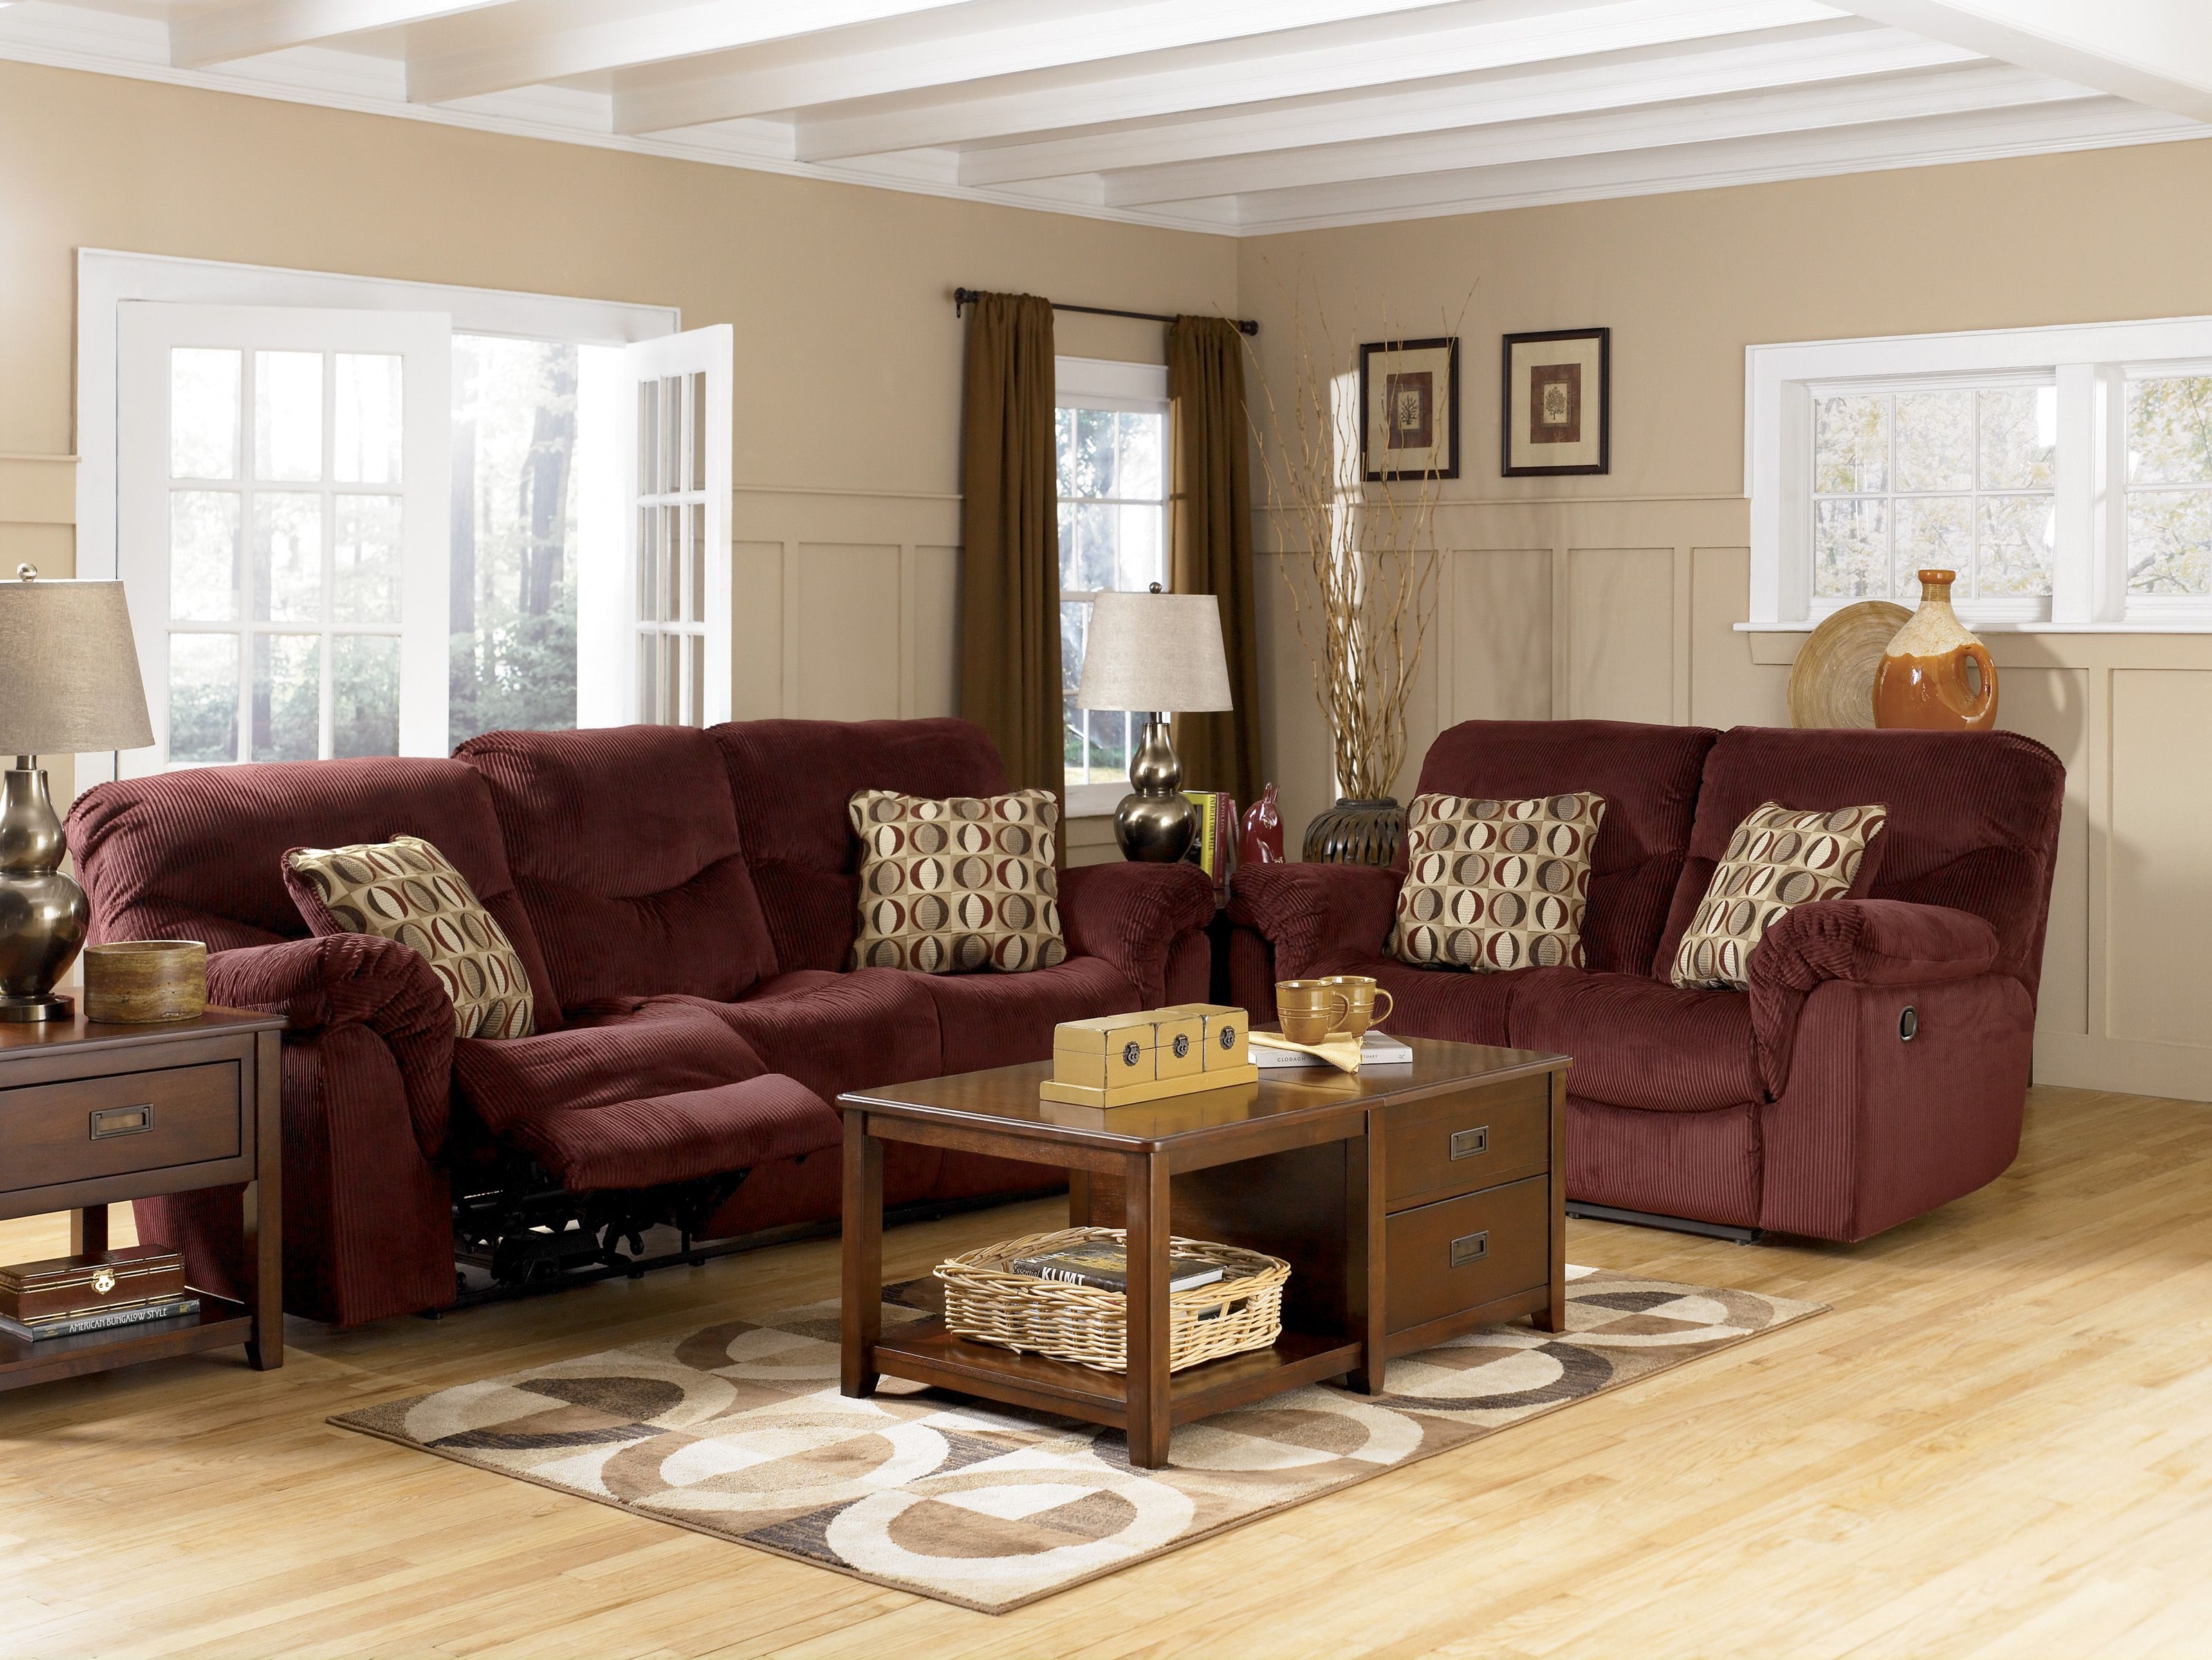 Best Living Rooms With Bugundy Sofas As 68601 68601 400 x 300